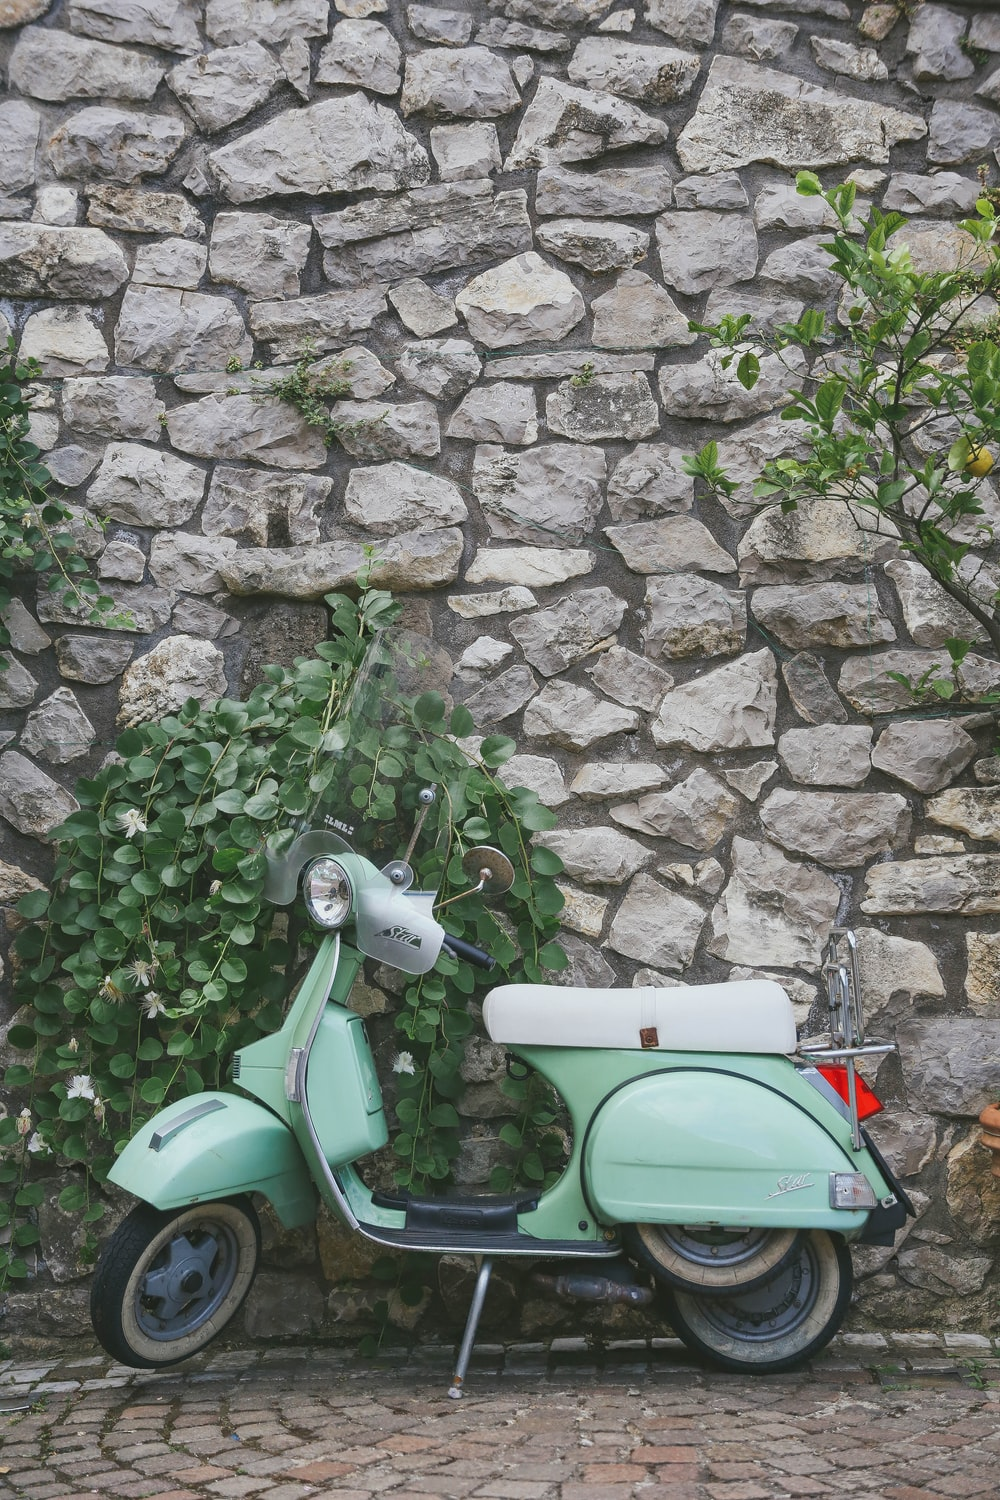 parked green motor scooter beside stone wall